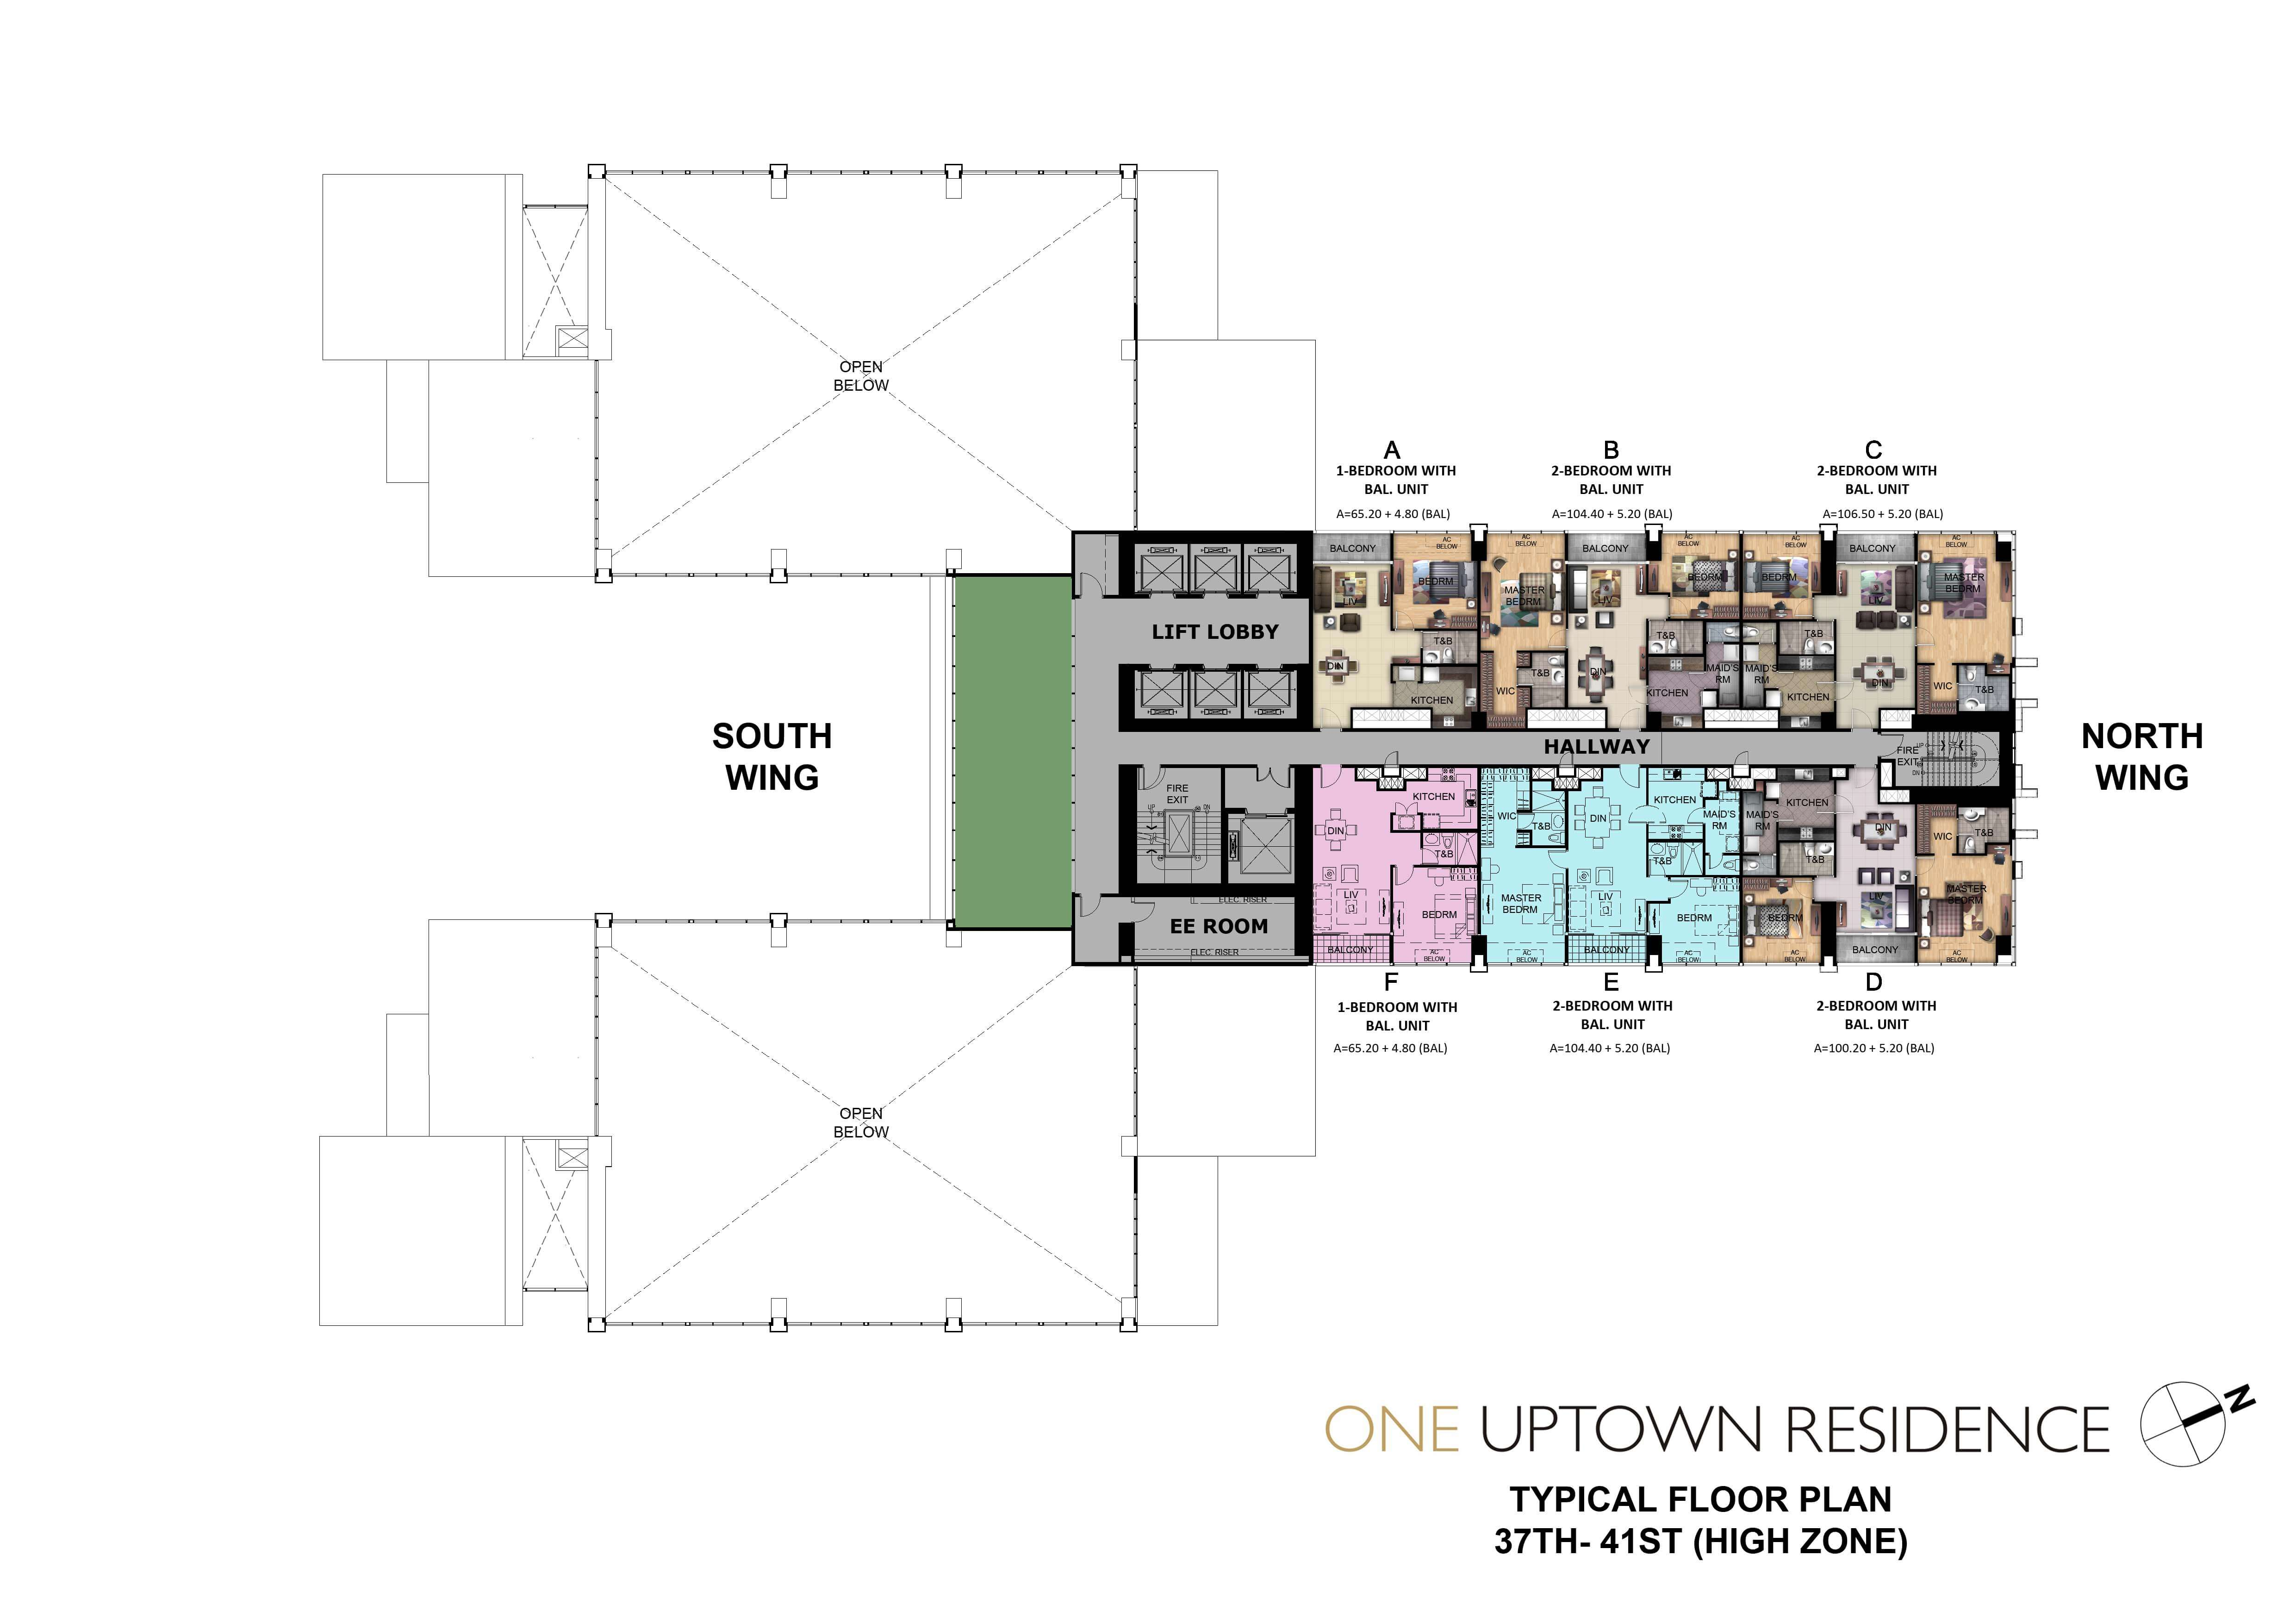 One Uptown Residence-Floor-Plans-Condos-for-sale-37th - 41st